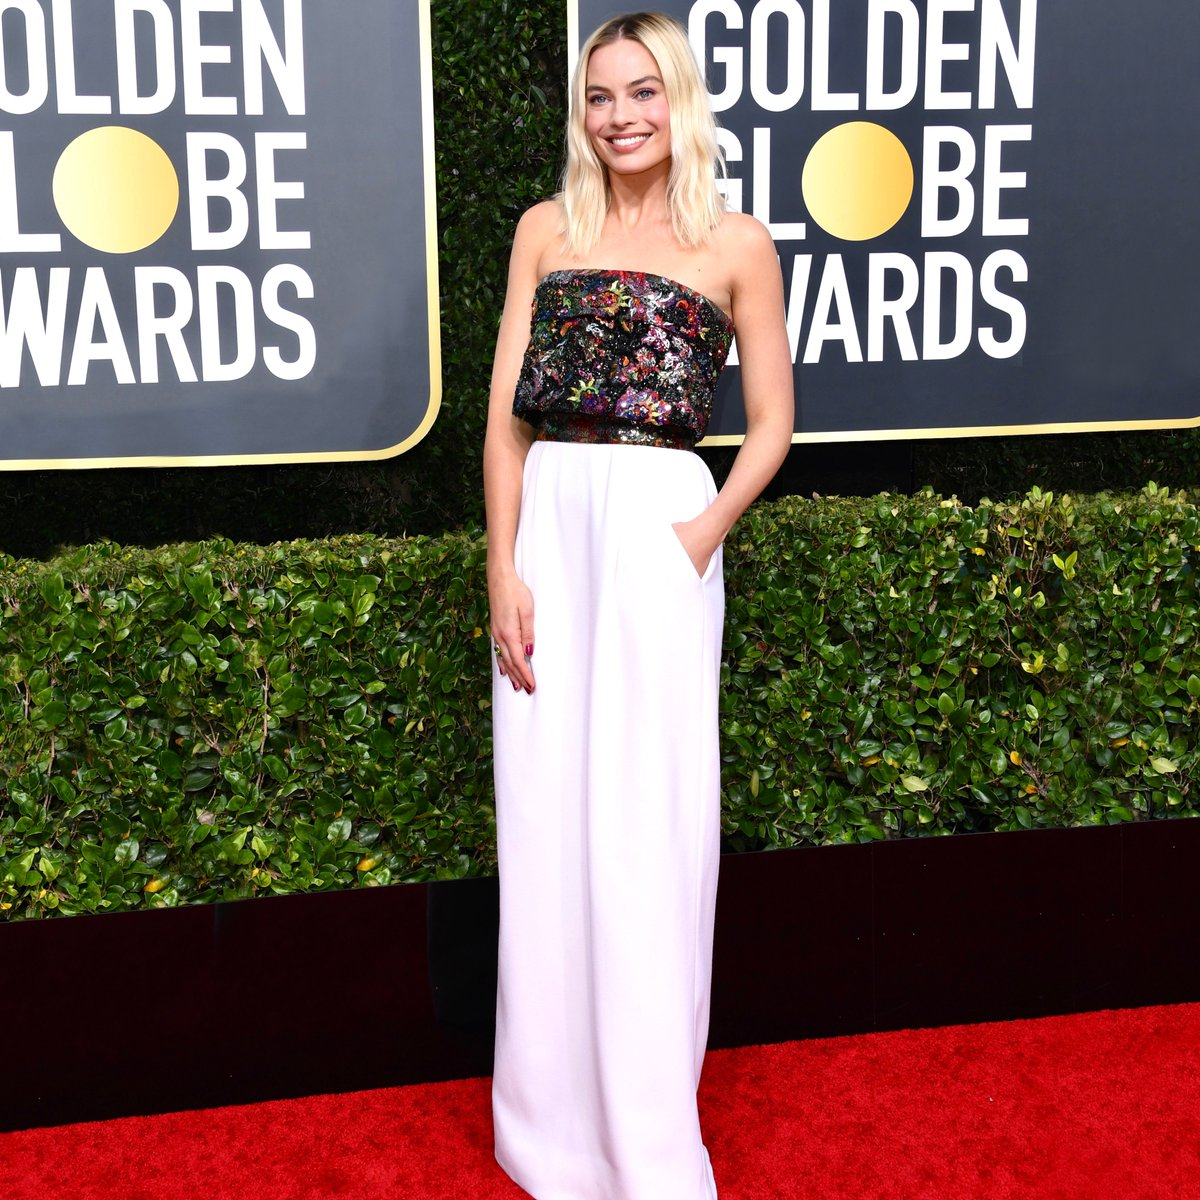 House ambassador Margot Robbie attended the 77th Golden Globes awards ceremony in an embroidered metallic bustier top with a long skirt in satin from the Fall-Winter 2019/20 Haute Couture collection. #CHANELinCinema #CHANELHauteCouture #GoldenGlobes